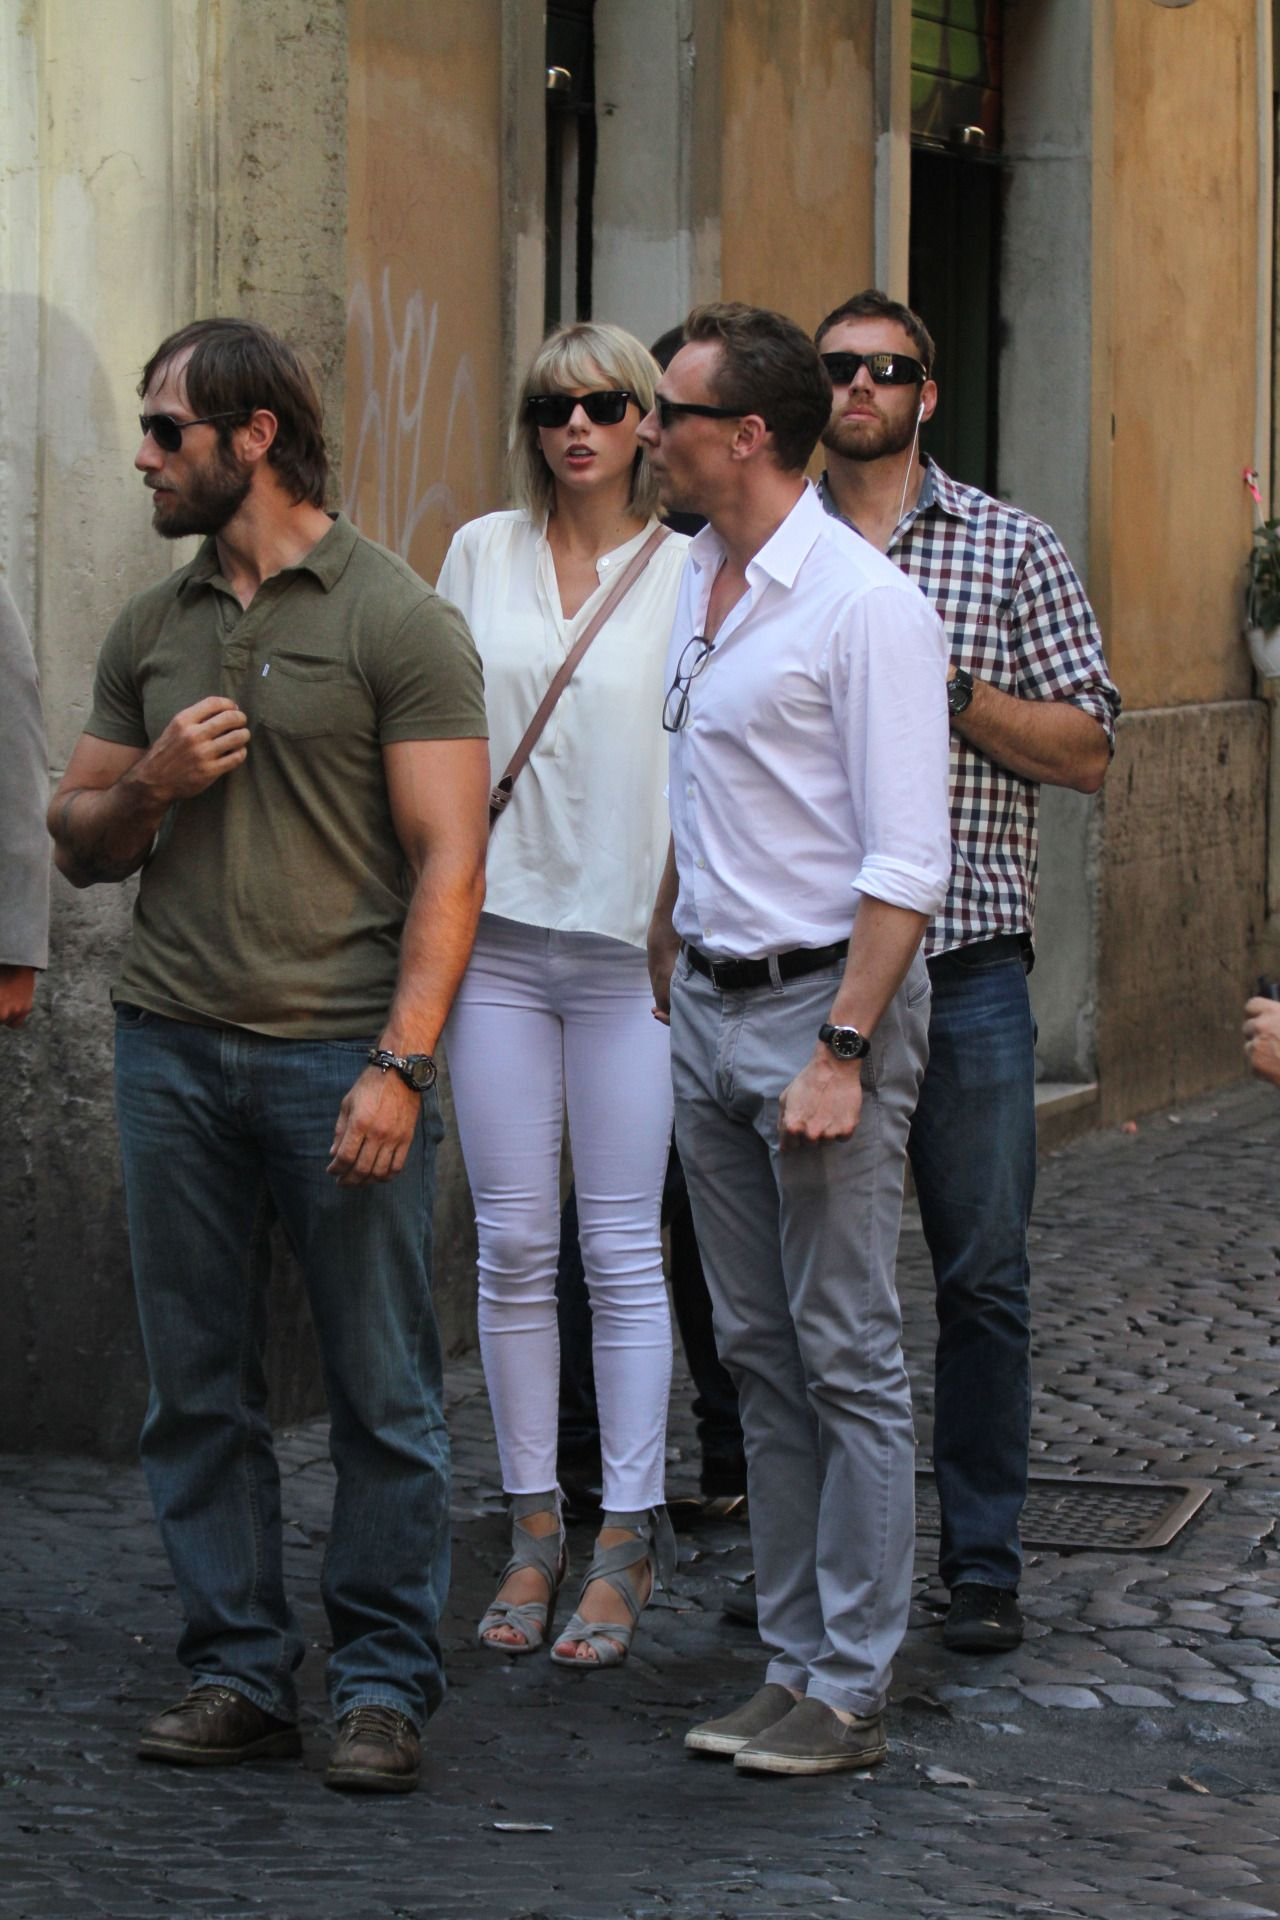 Taylor and Tom having breakfast at Piazza Navona in Rome, Italy 6.28.16